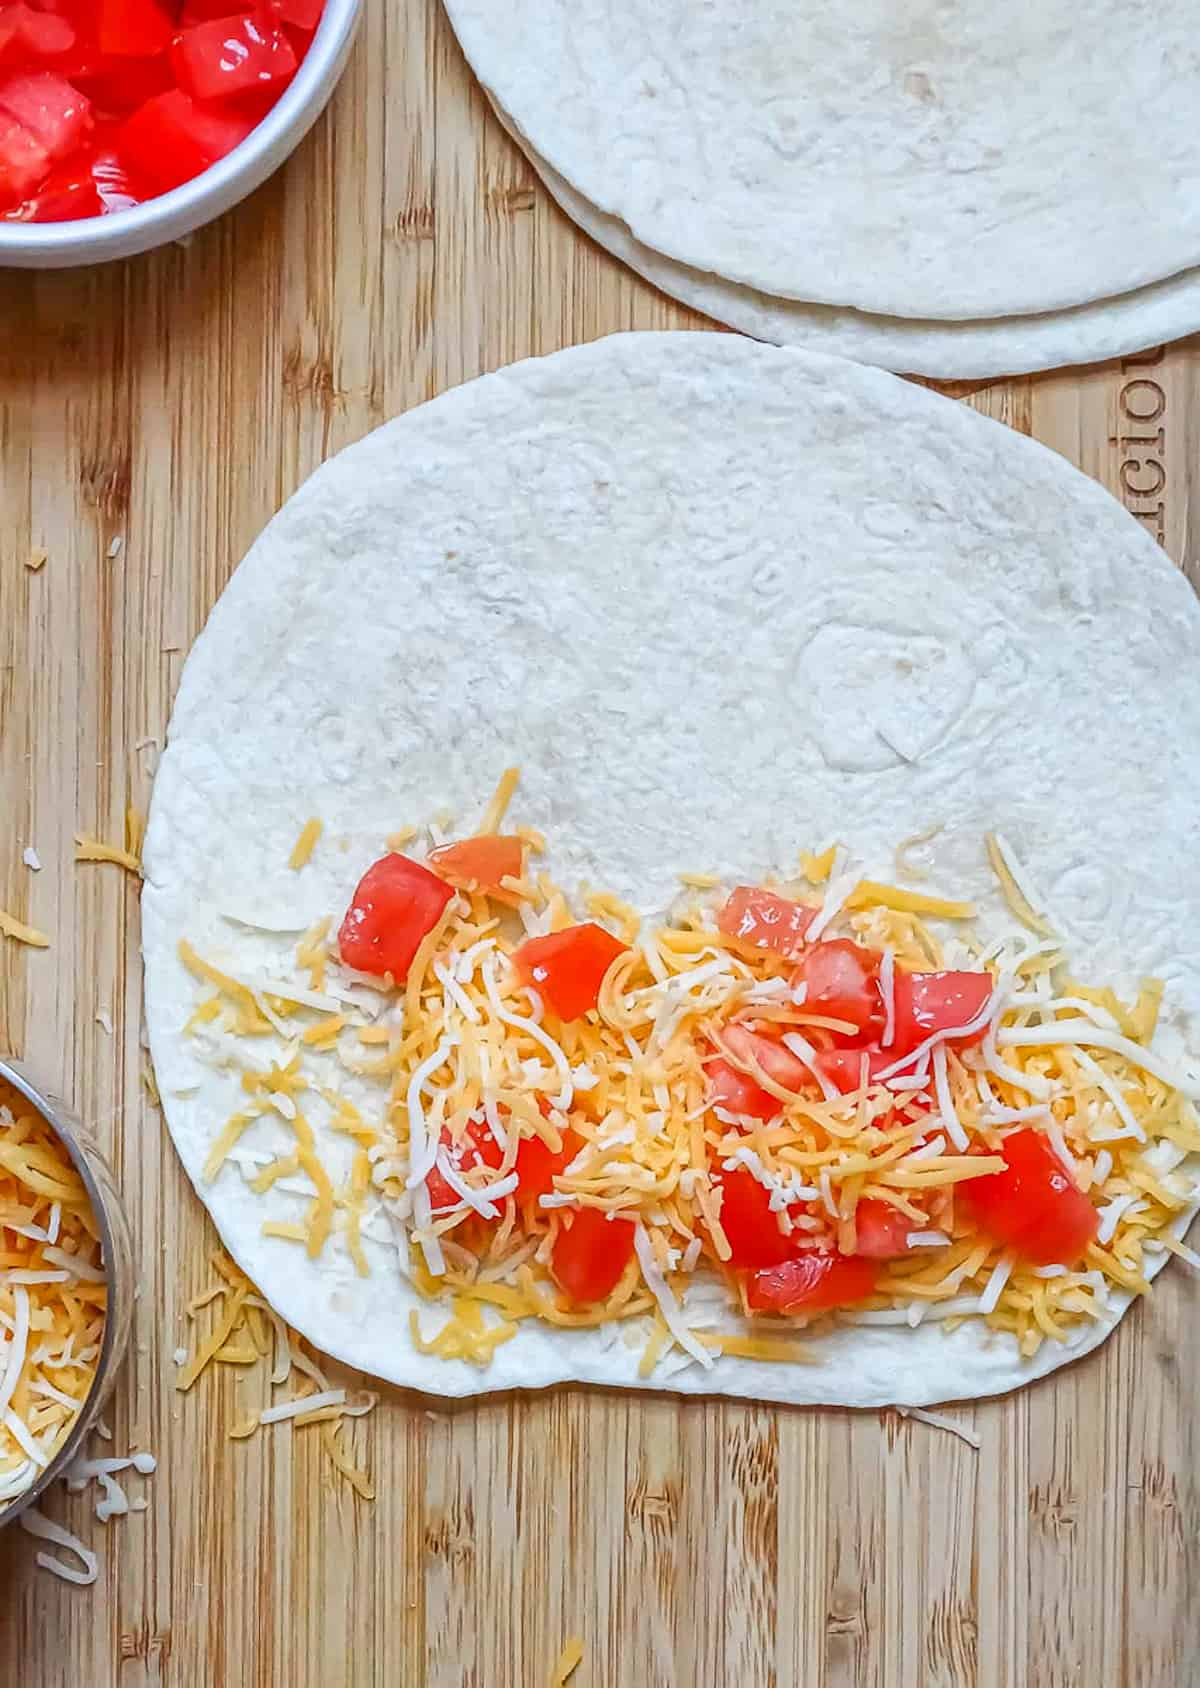 tortilla shell with cheese and tomatoes on 1 side